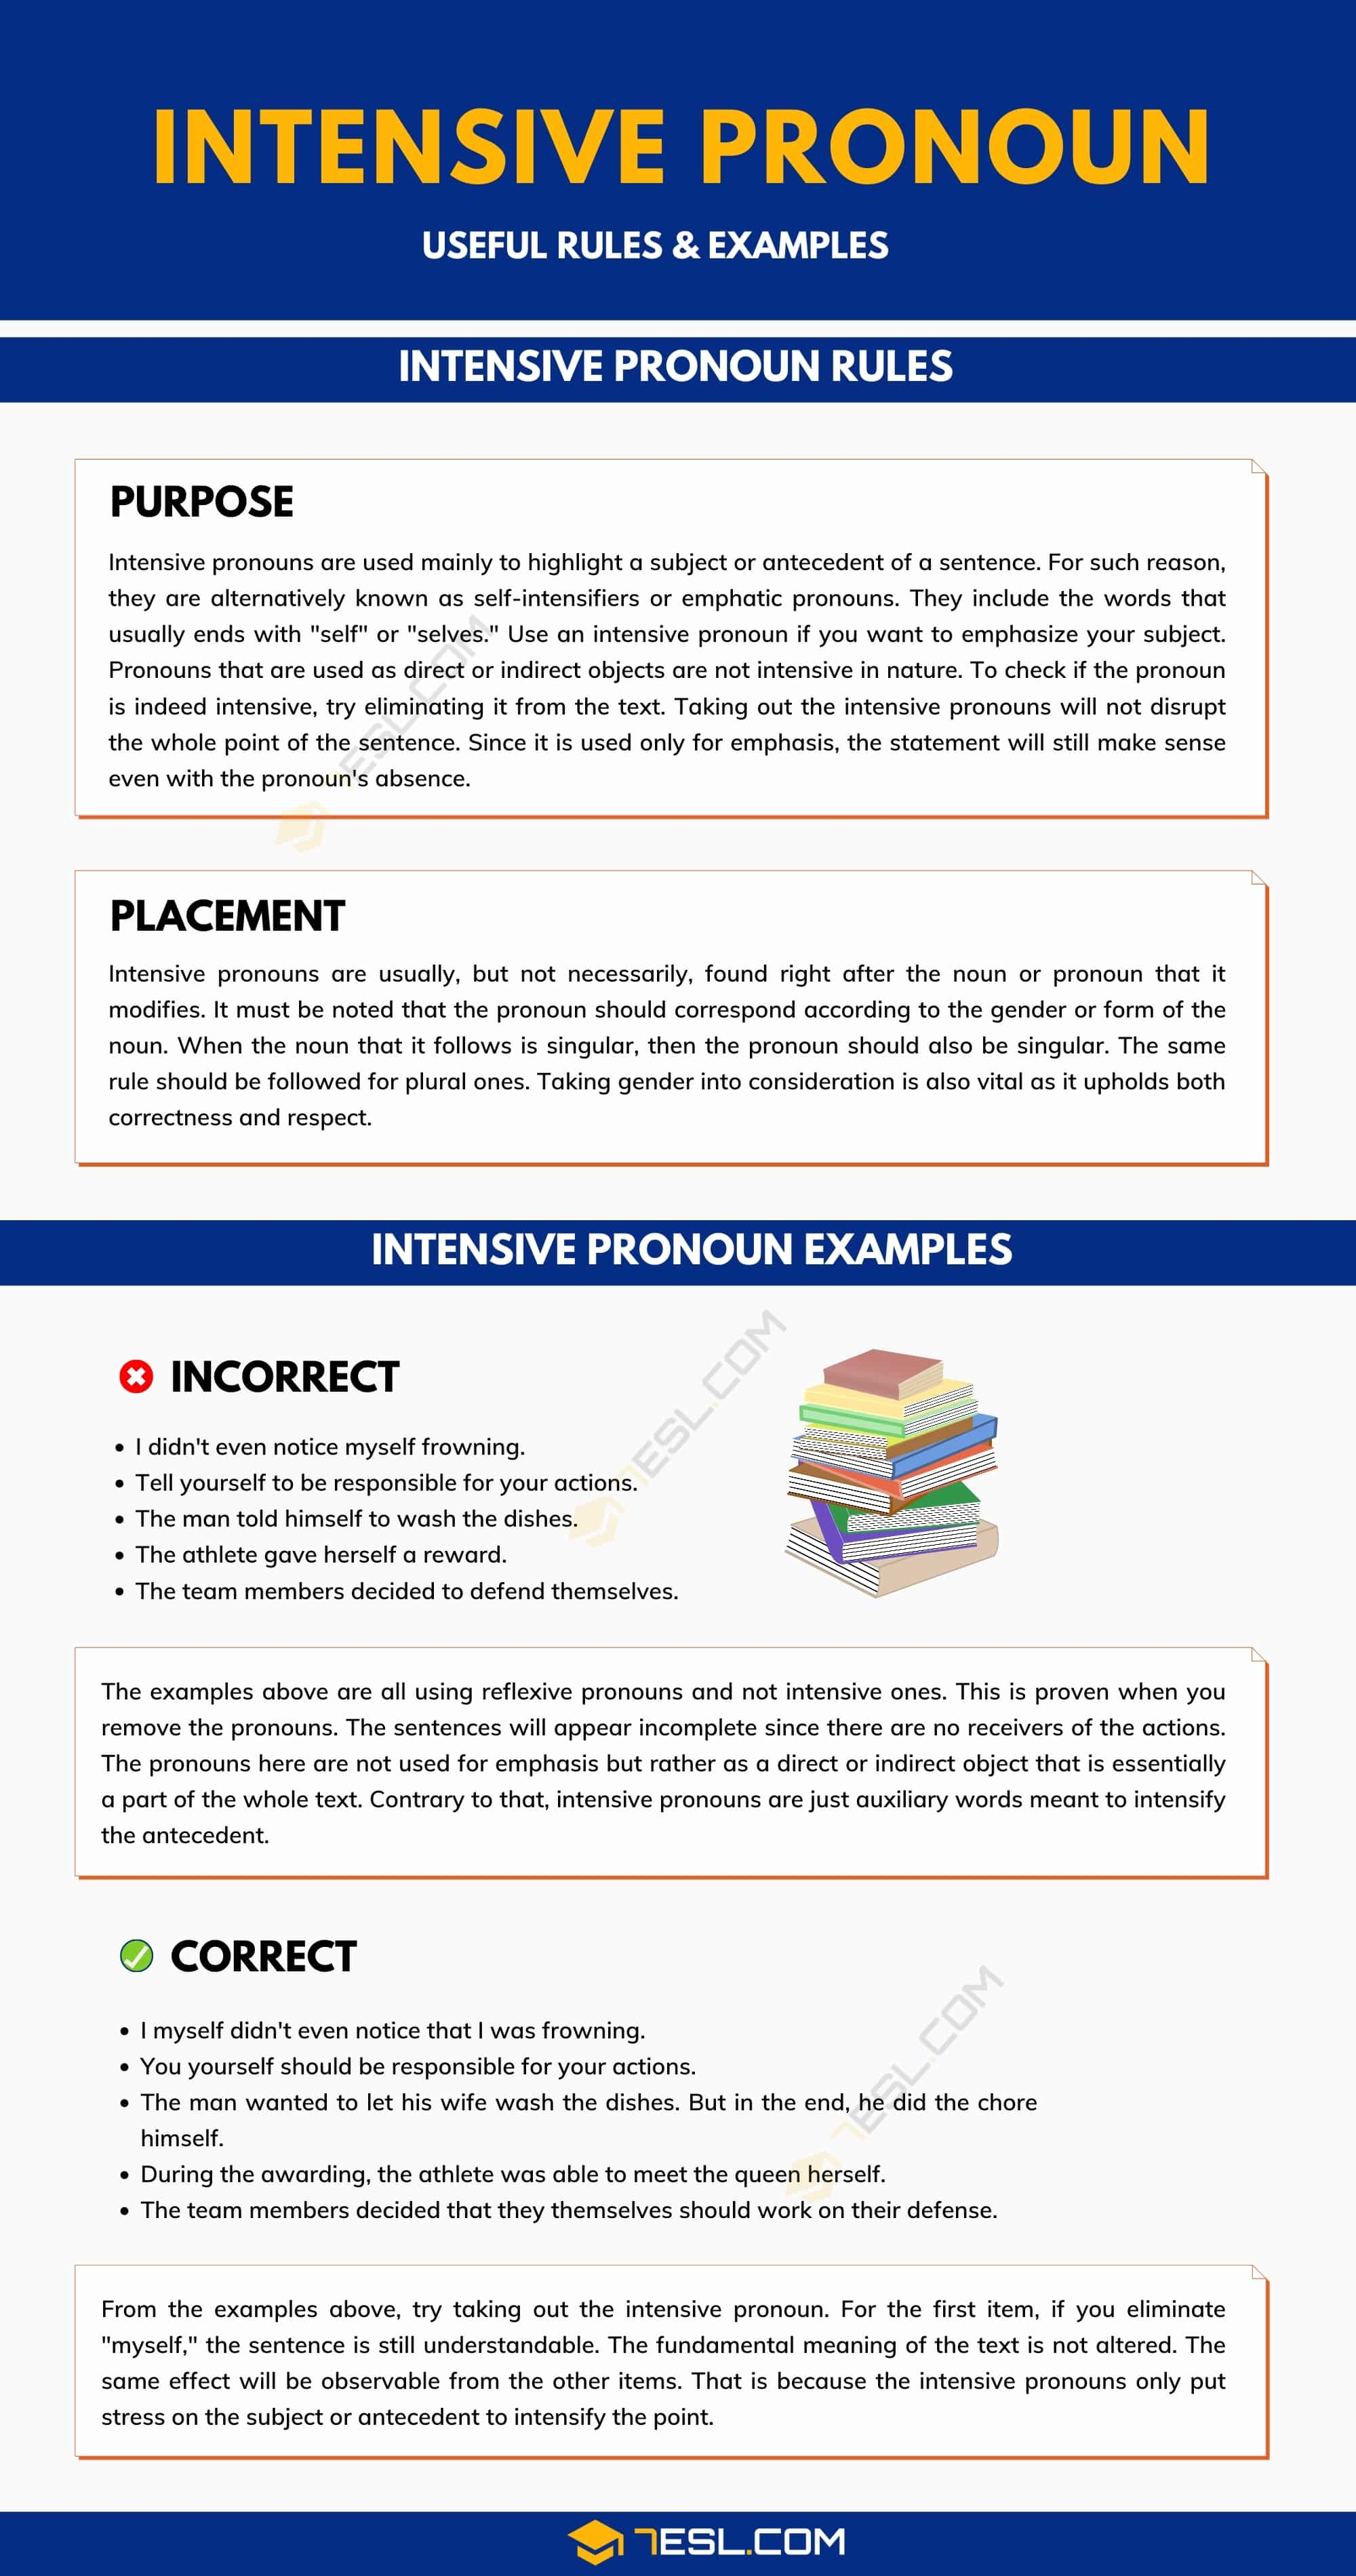 Intensive Pronoun: Rules and Examples